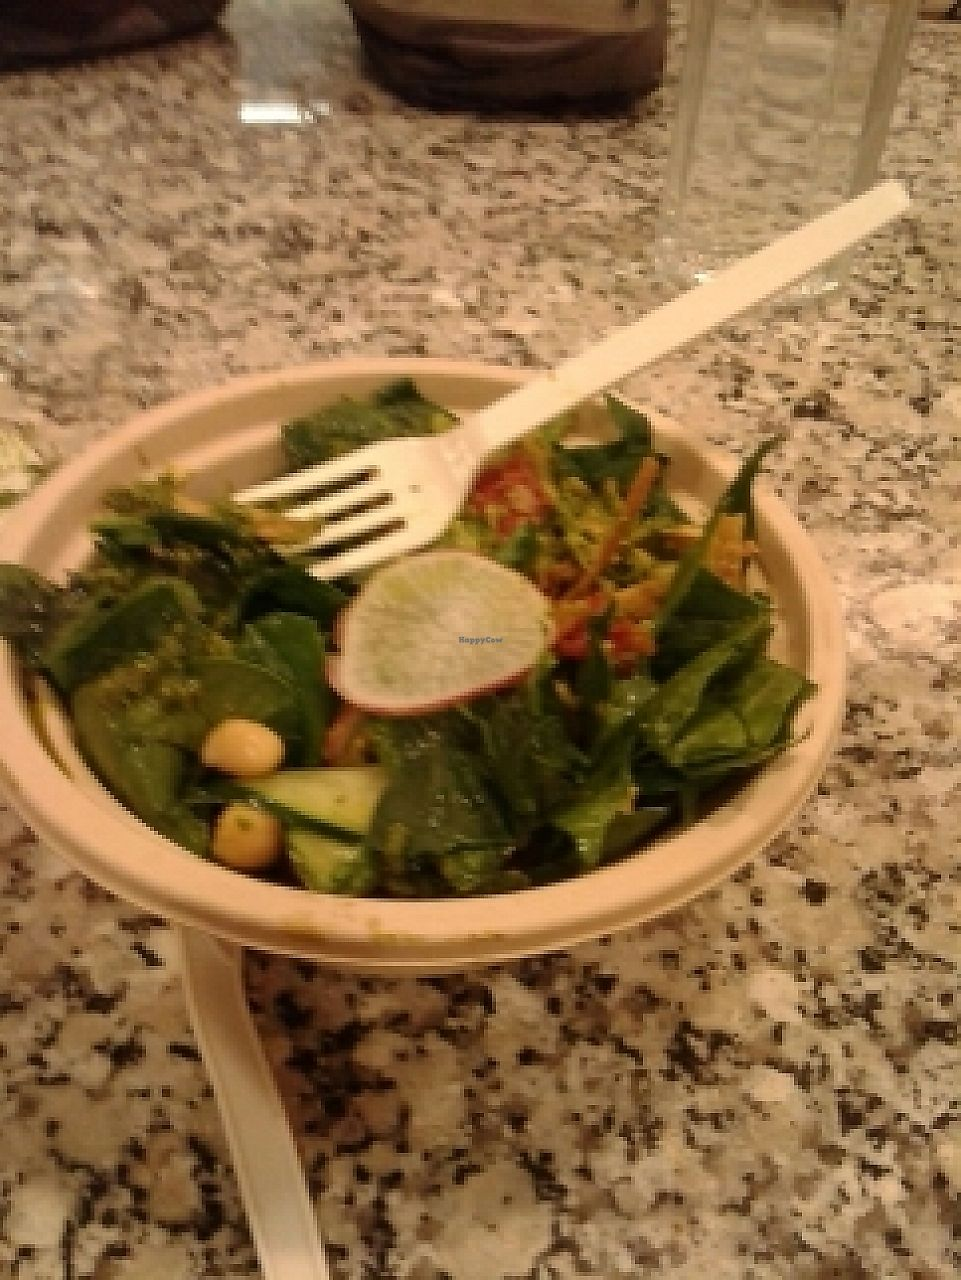 """Photo of Basico Food & Juice  by <a href=""""/members/profile/TanisSan"""">TanisSan</a> <br/>budah bowl--> kale, quinoa, garbanzo <br/> May 18, 2016  - <a href='/contact/abuse/image/73586/295984'>Report</a>"""